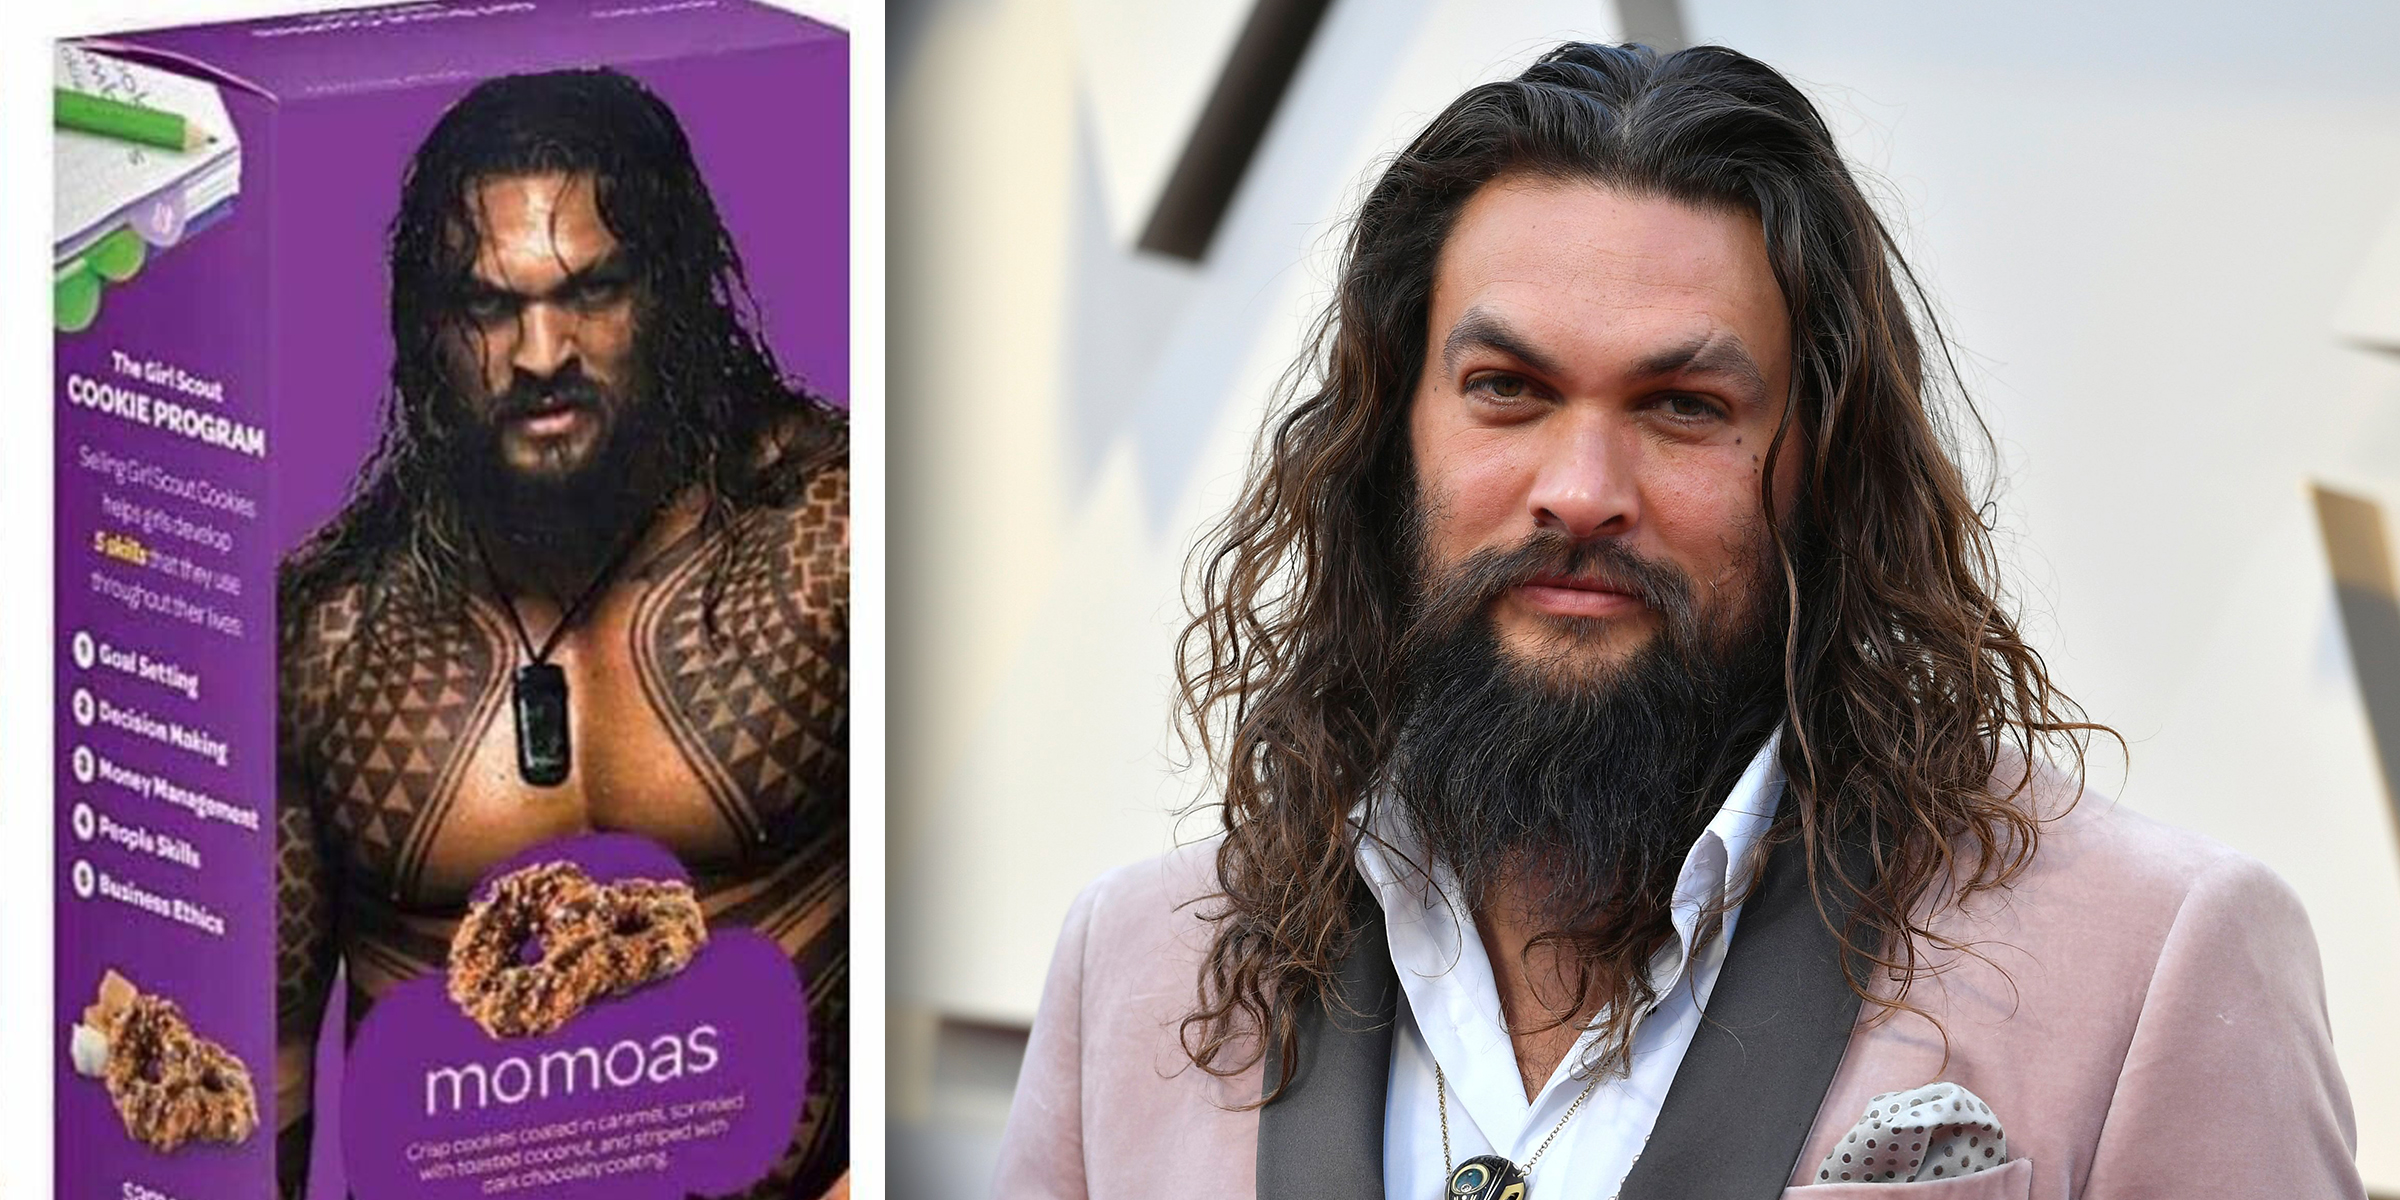 Jason Momoa Responds To Girl Scout Who Used Shirtless Photo Of Him